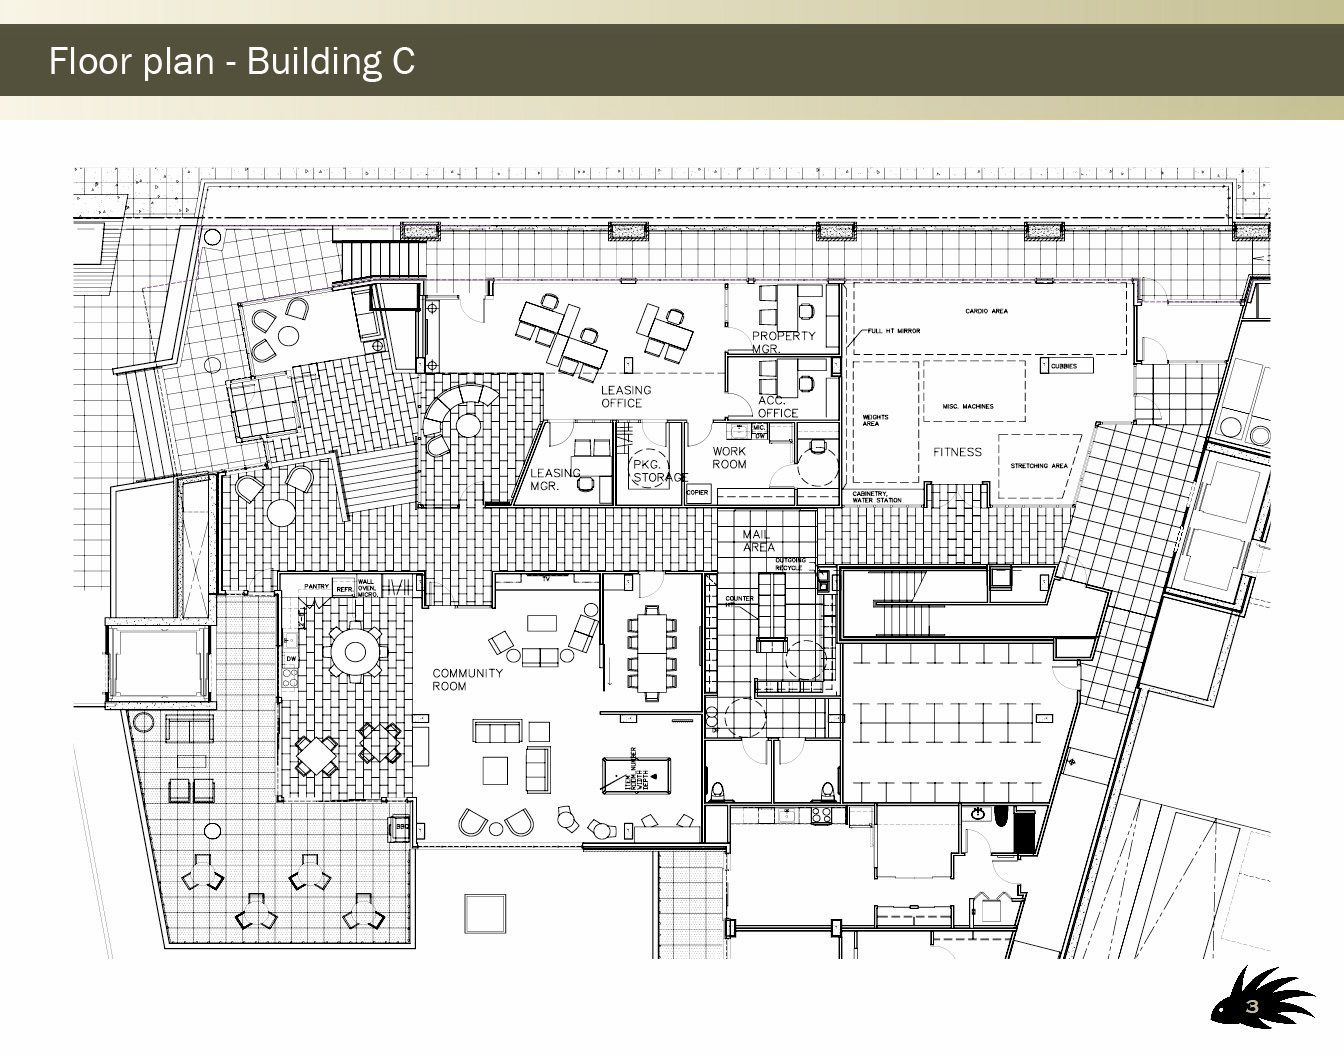 Escala Seattle Floor Plans Green Lake Village Apartments By Bruce Maclachlan At